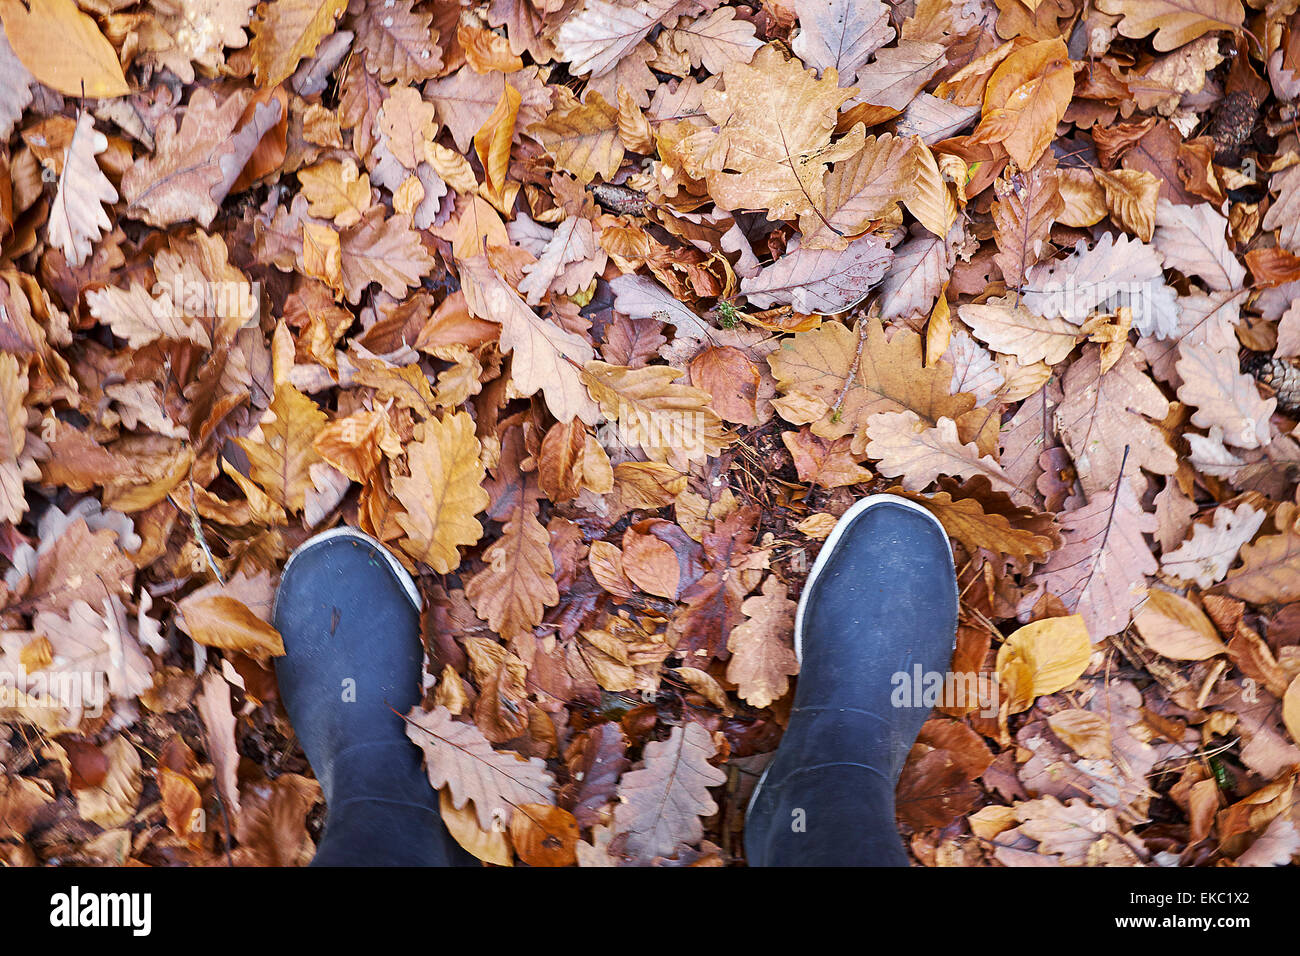 High angle view of woman in rubber boots stranding in autumn leaves - Stock Image